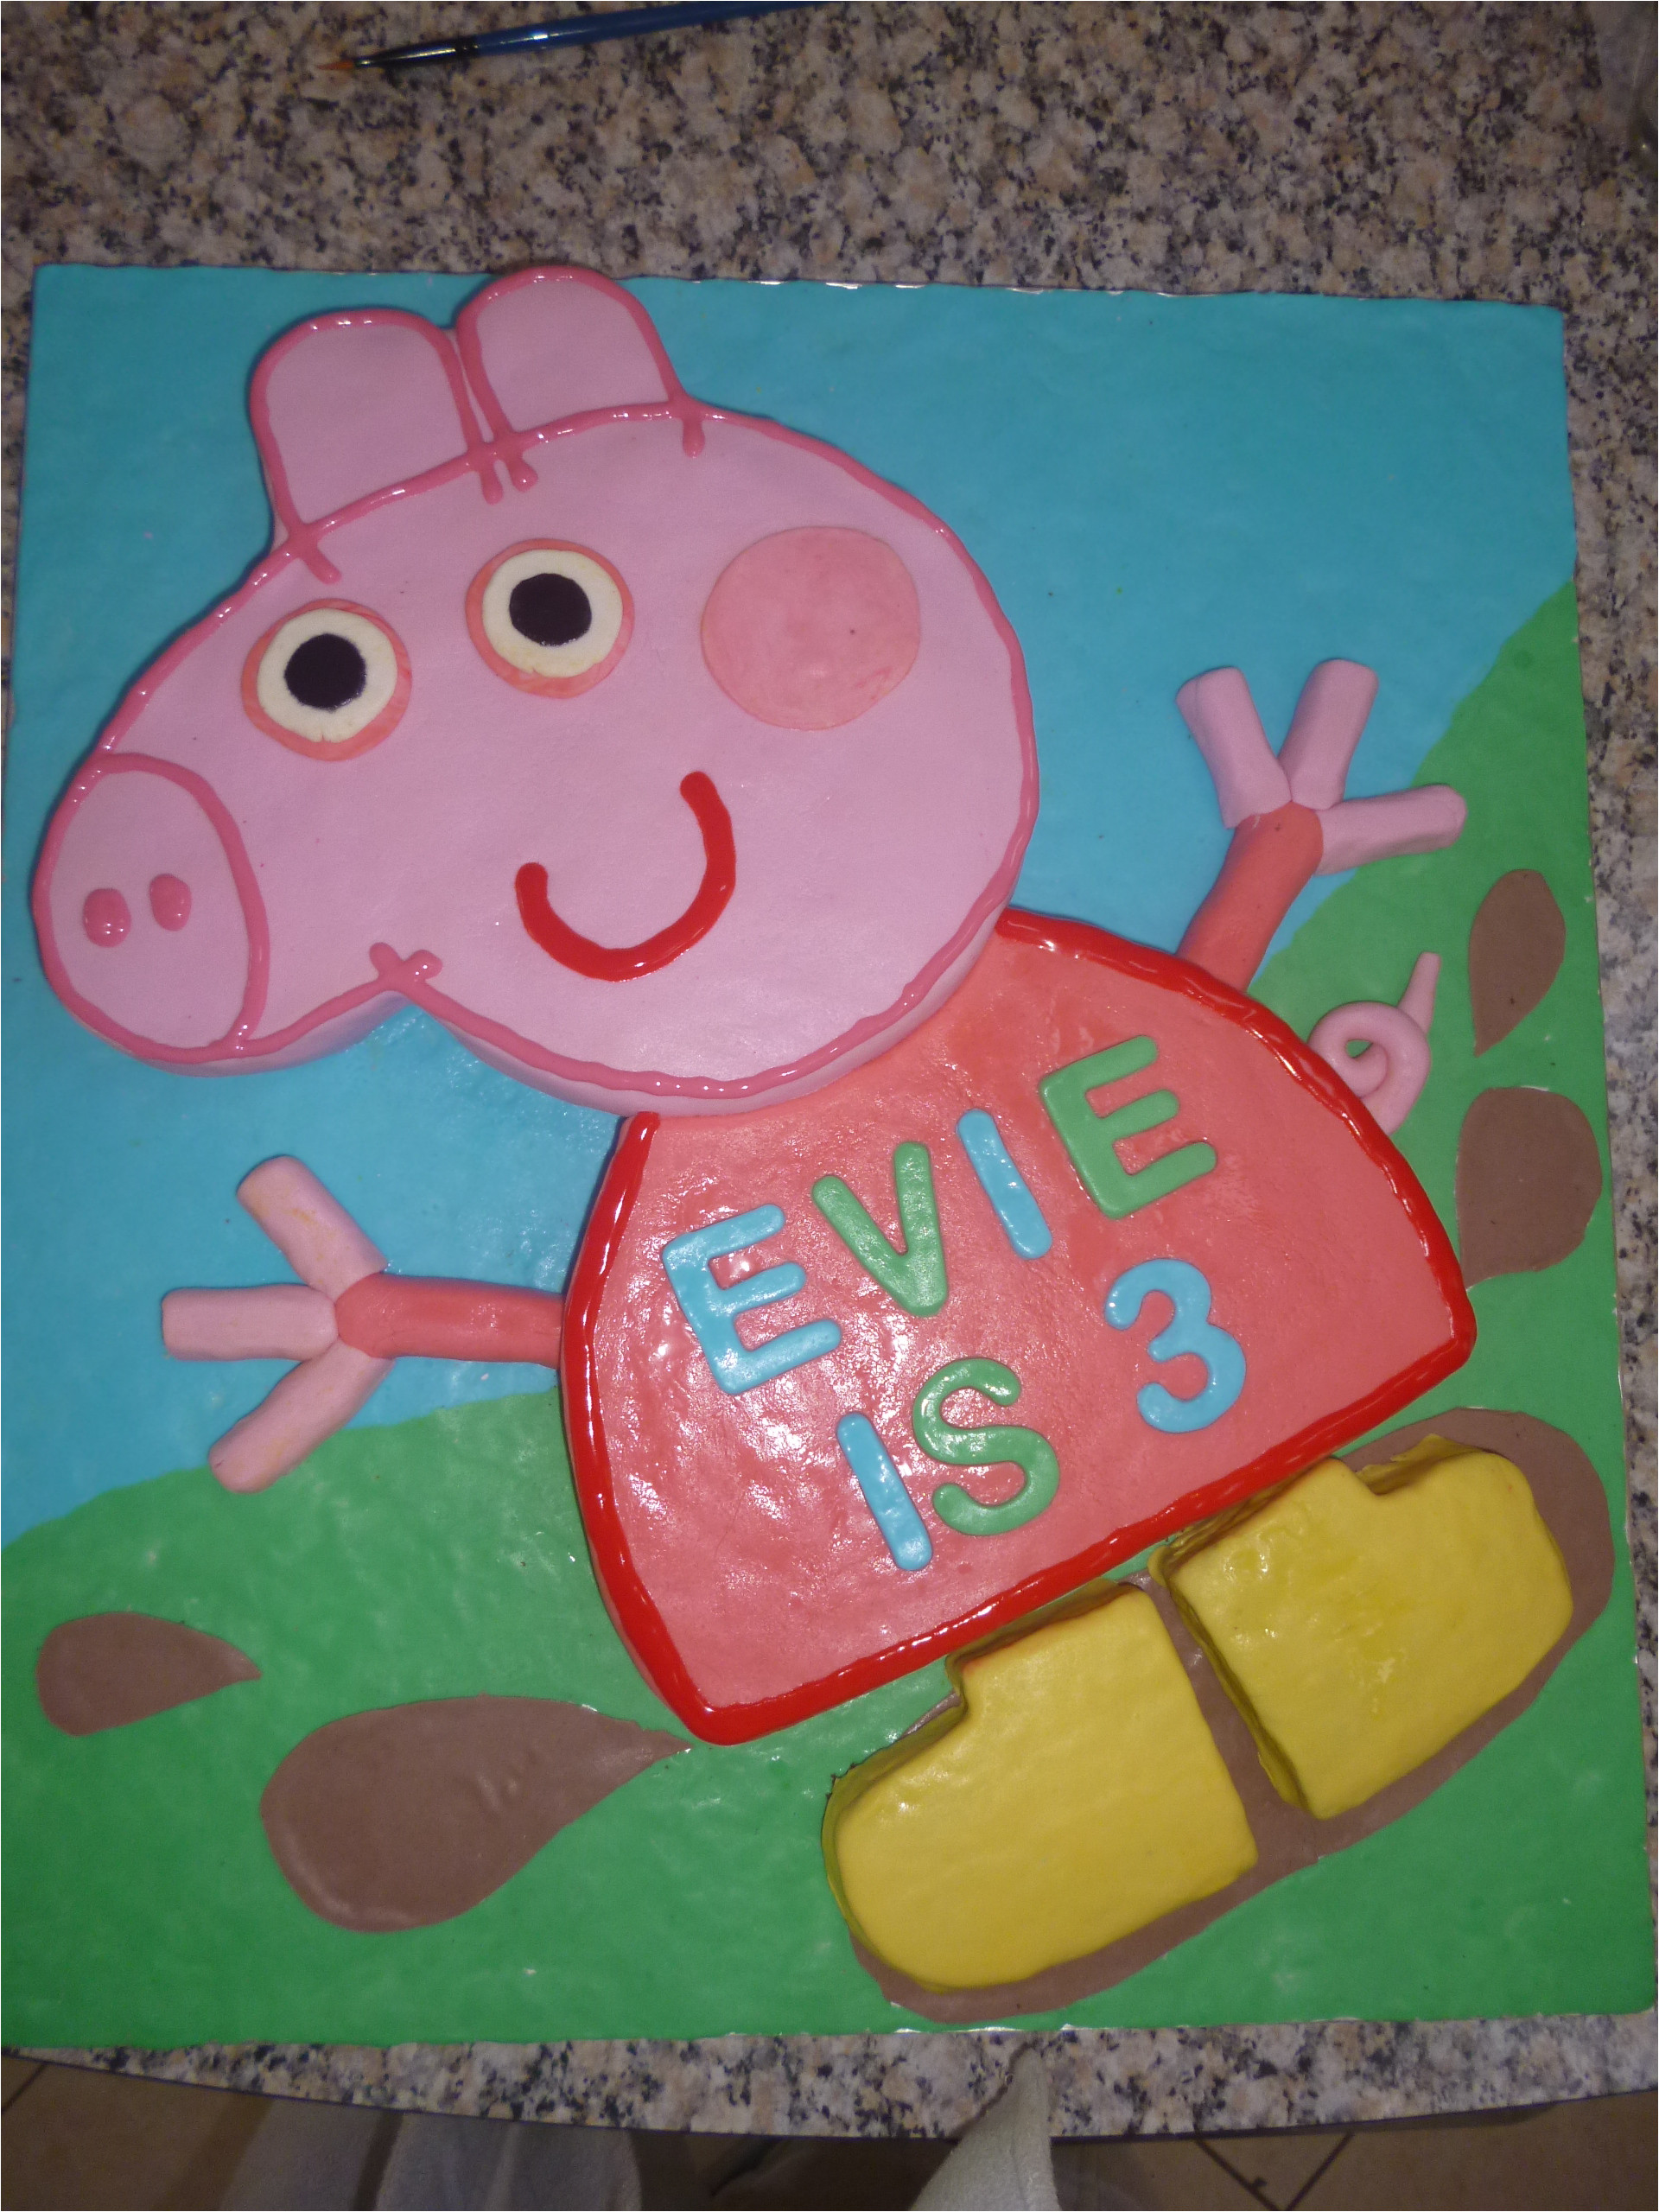 Peppa Pig Cake Template Free Peppa Pig Templates Cake Ideas and Designs